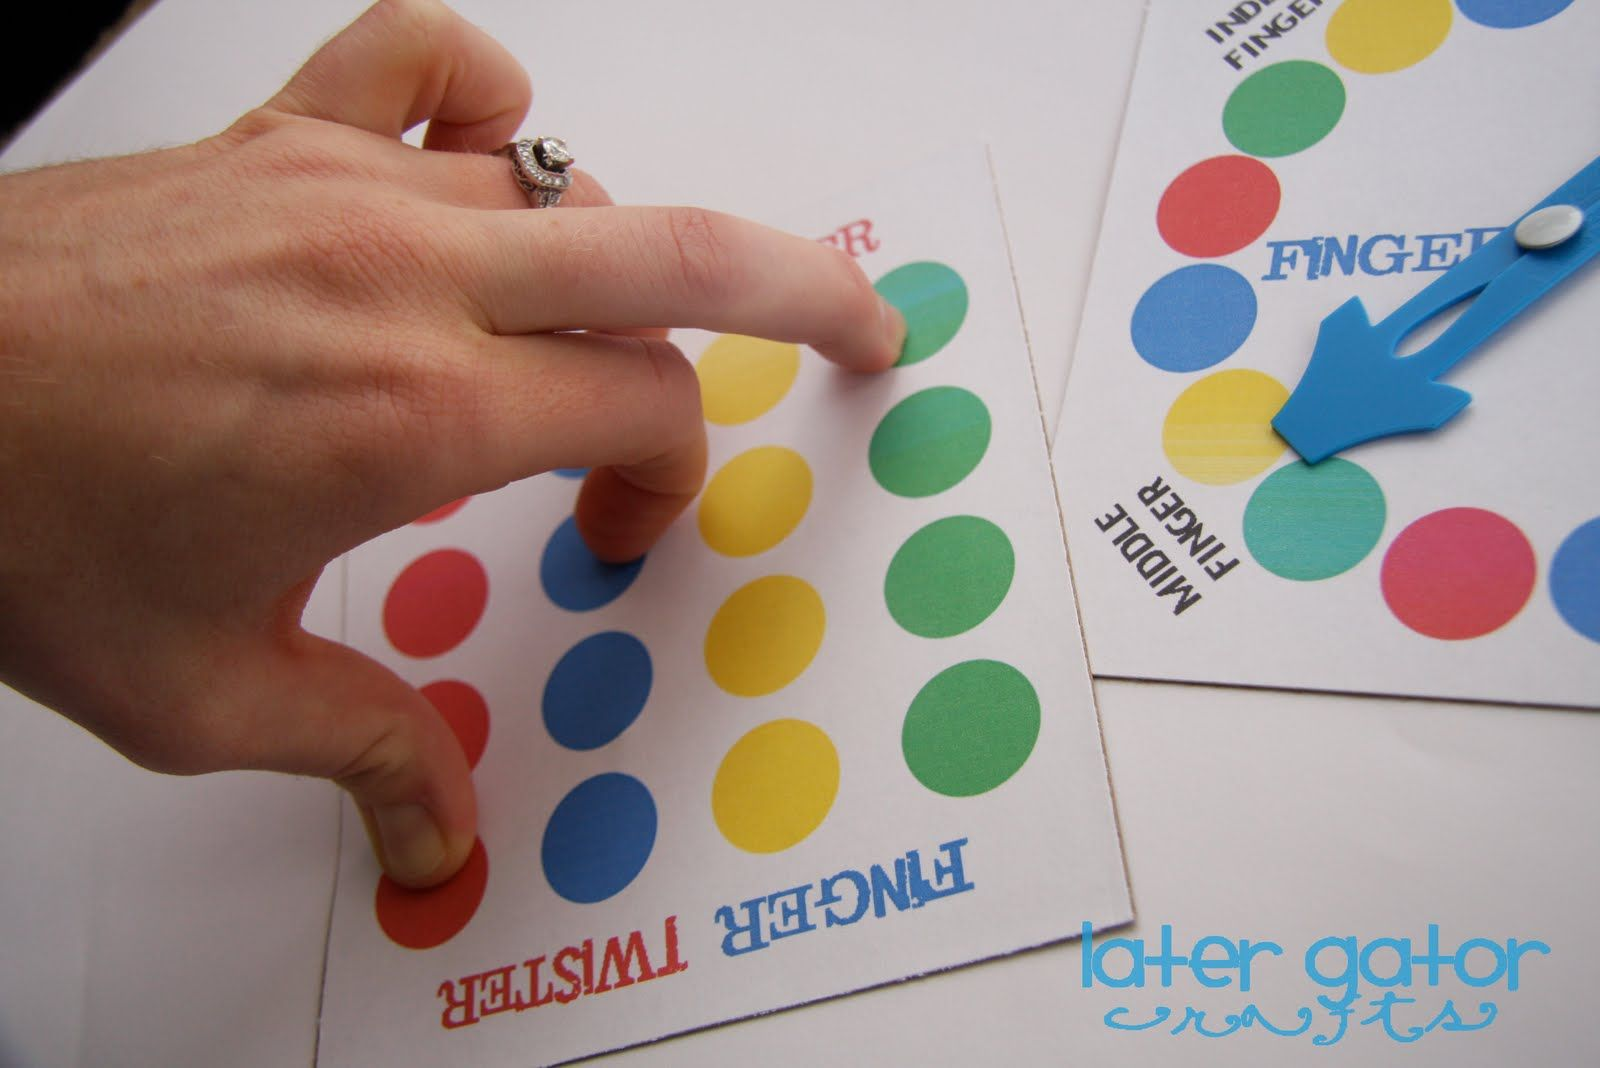 This Would Be Good For Learning Right Left And Color